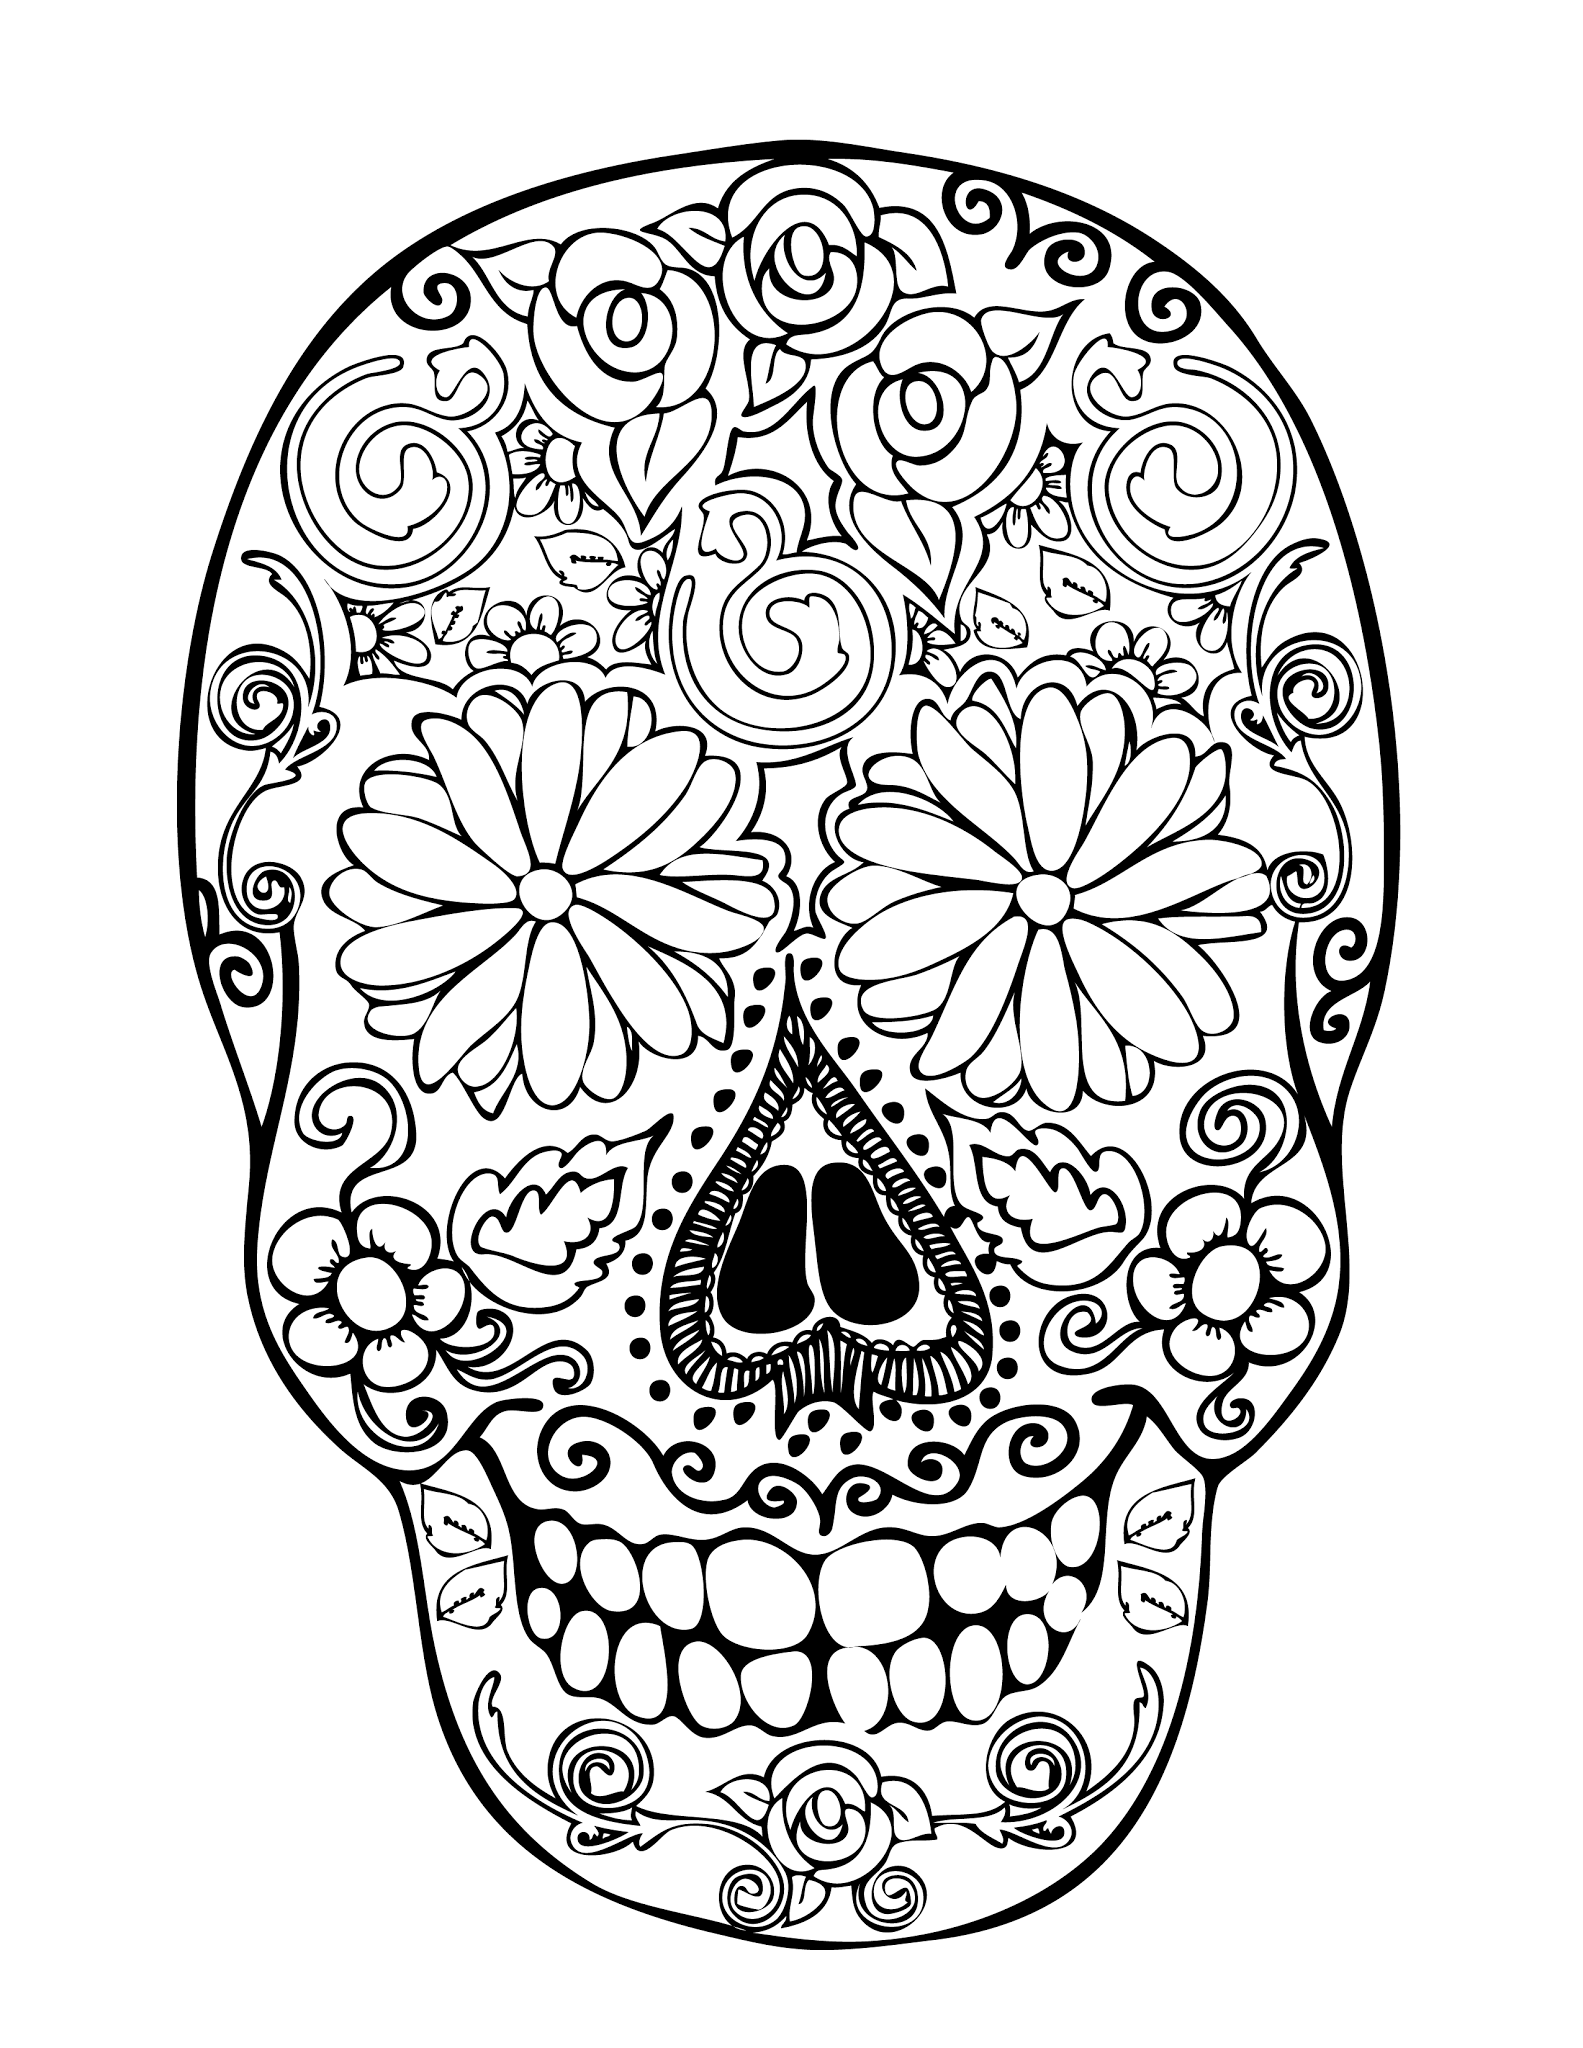 printable sugar-skull-free coloring pages,printable,coloring pages